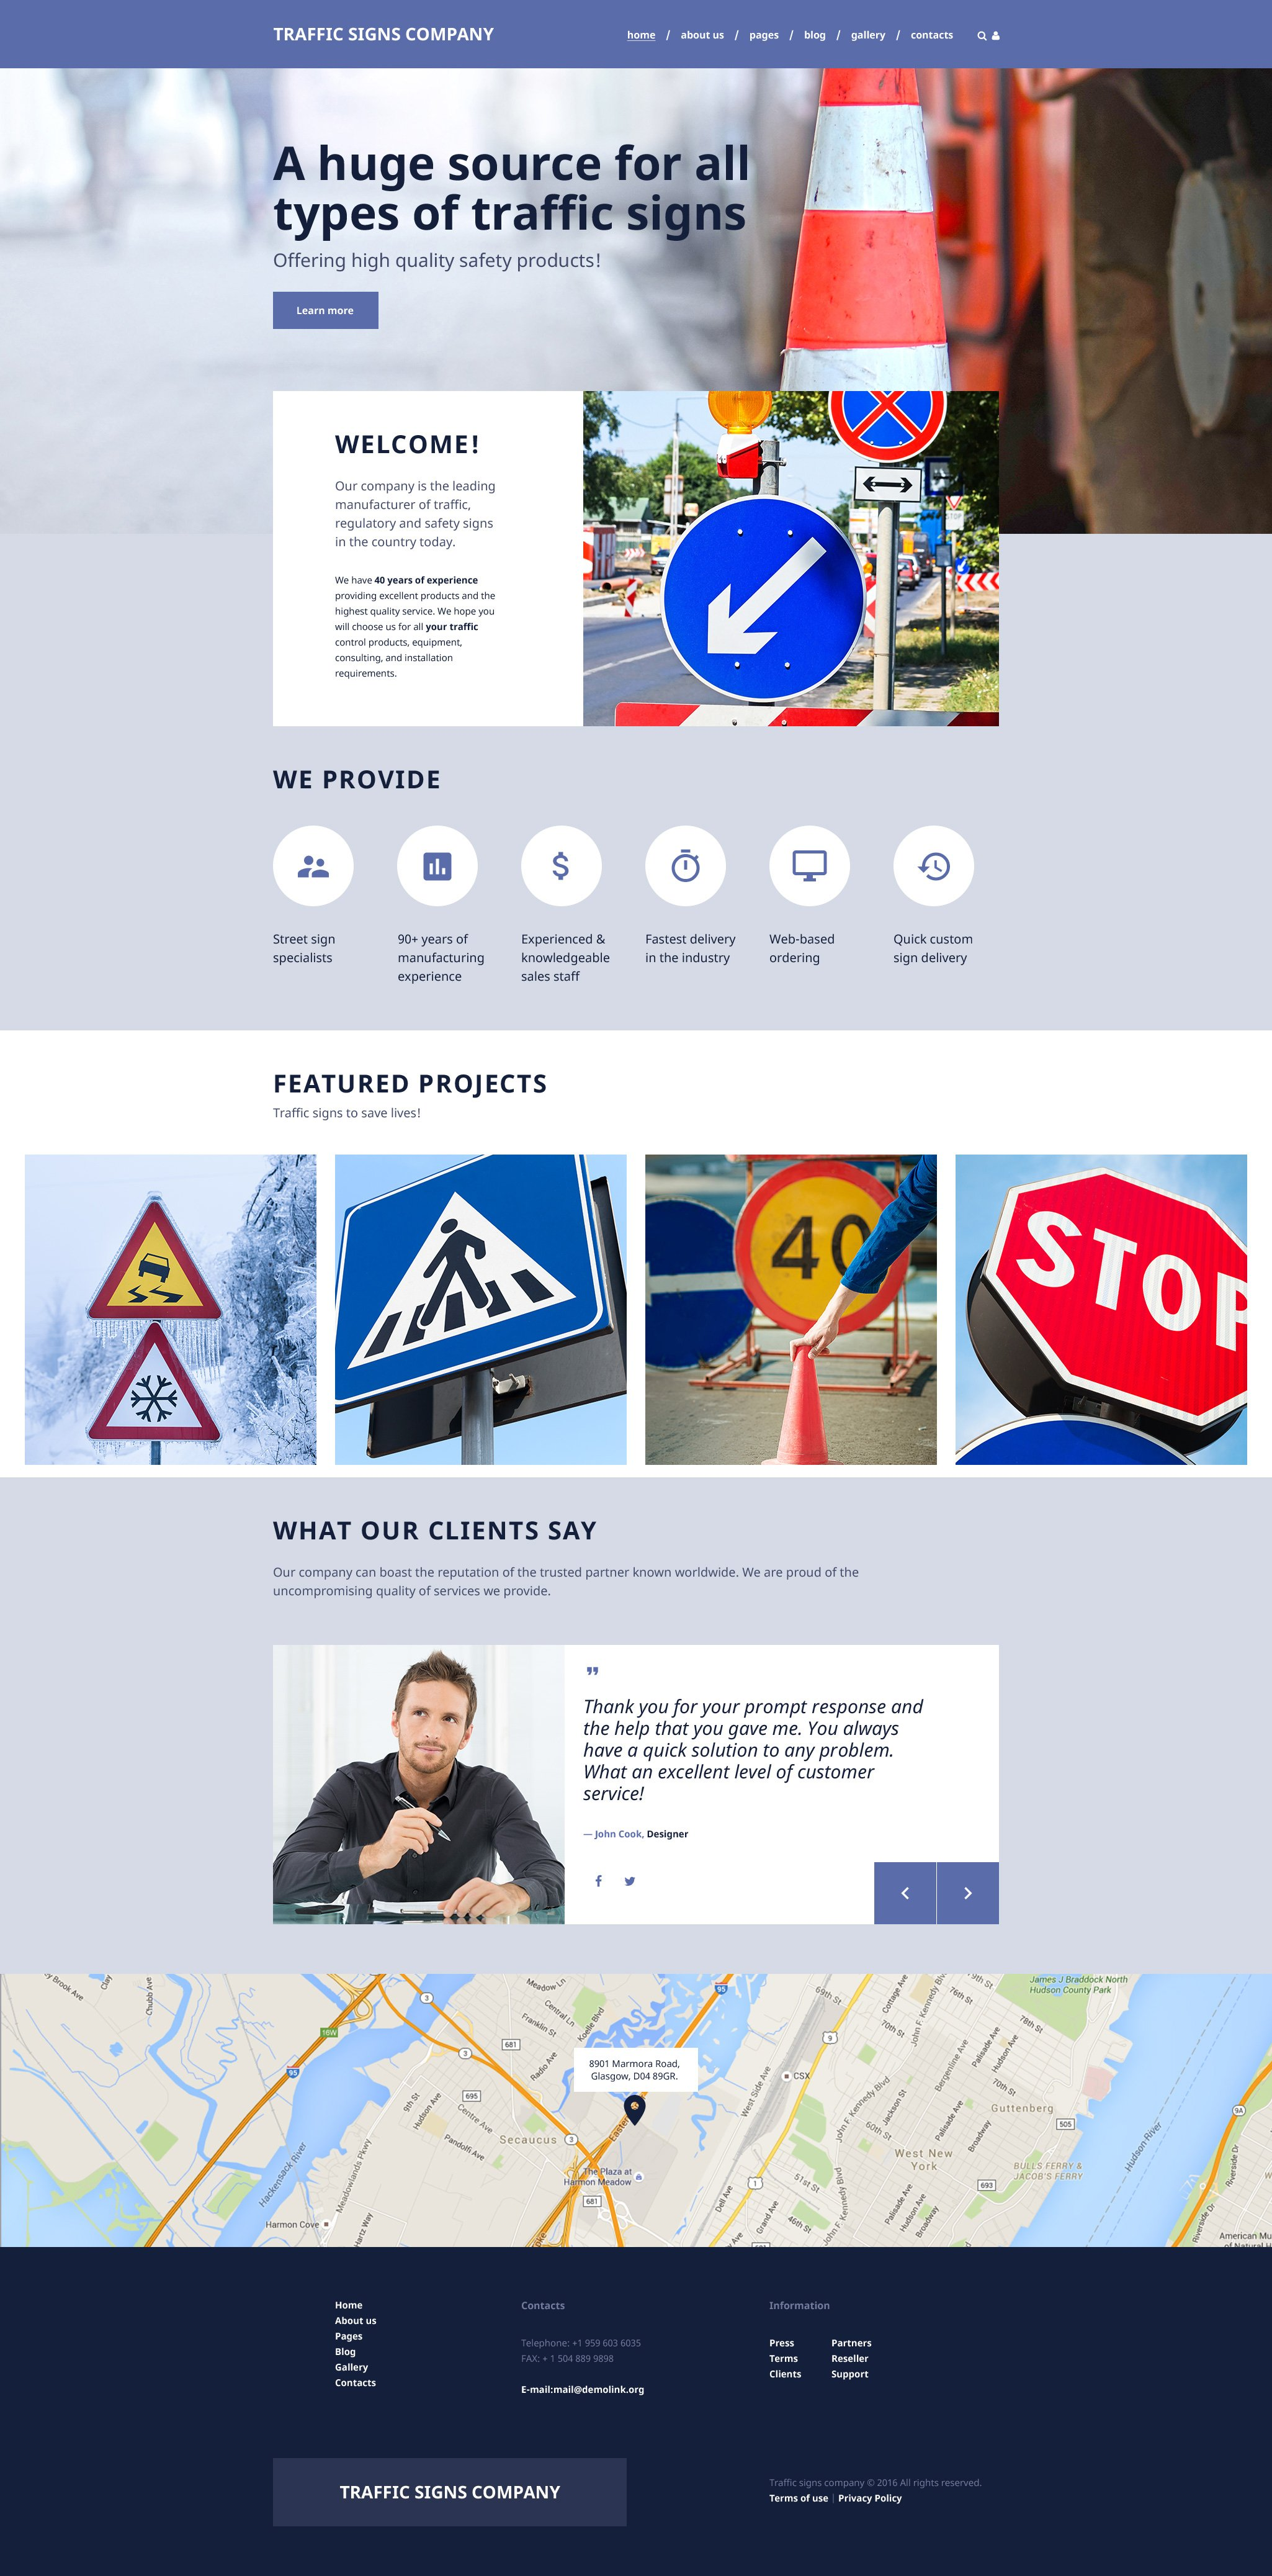 Road Construction - Paving Multipage Joomla Template